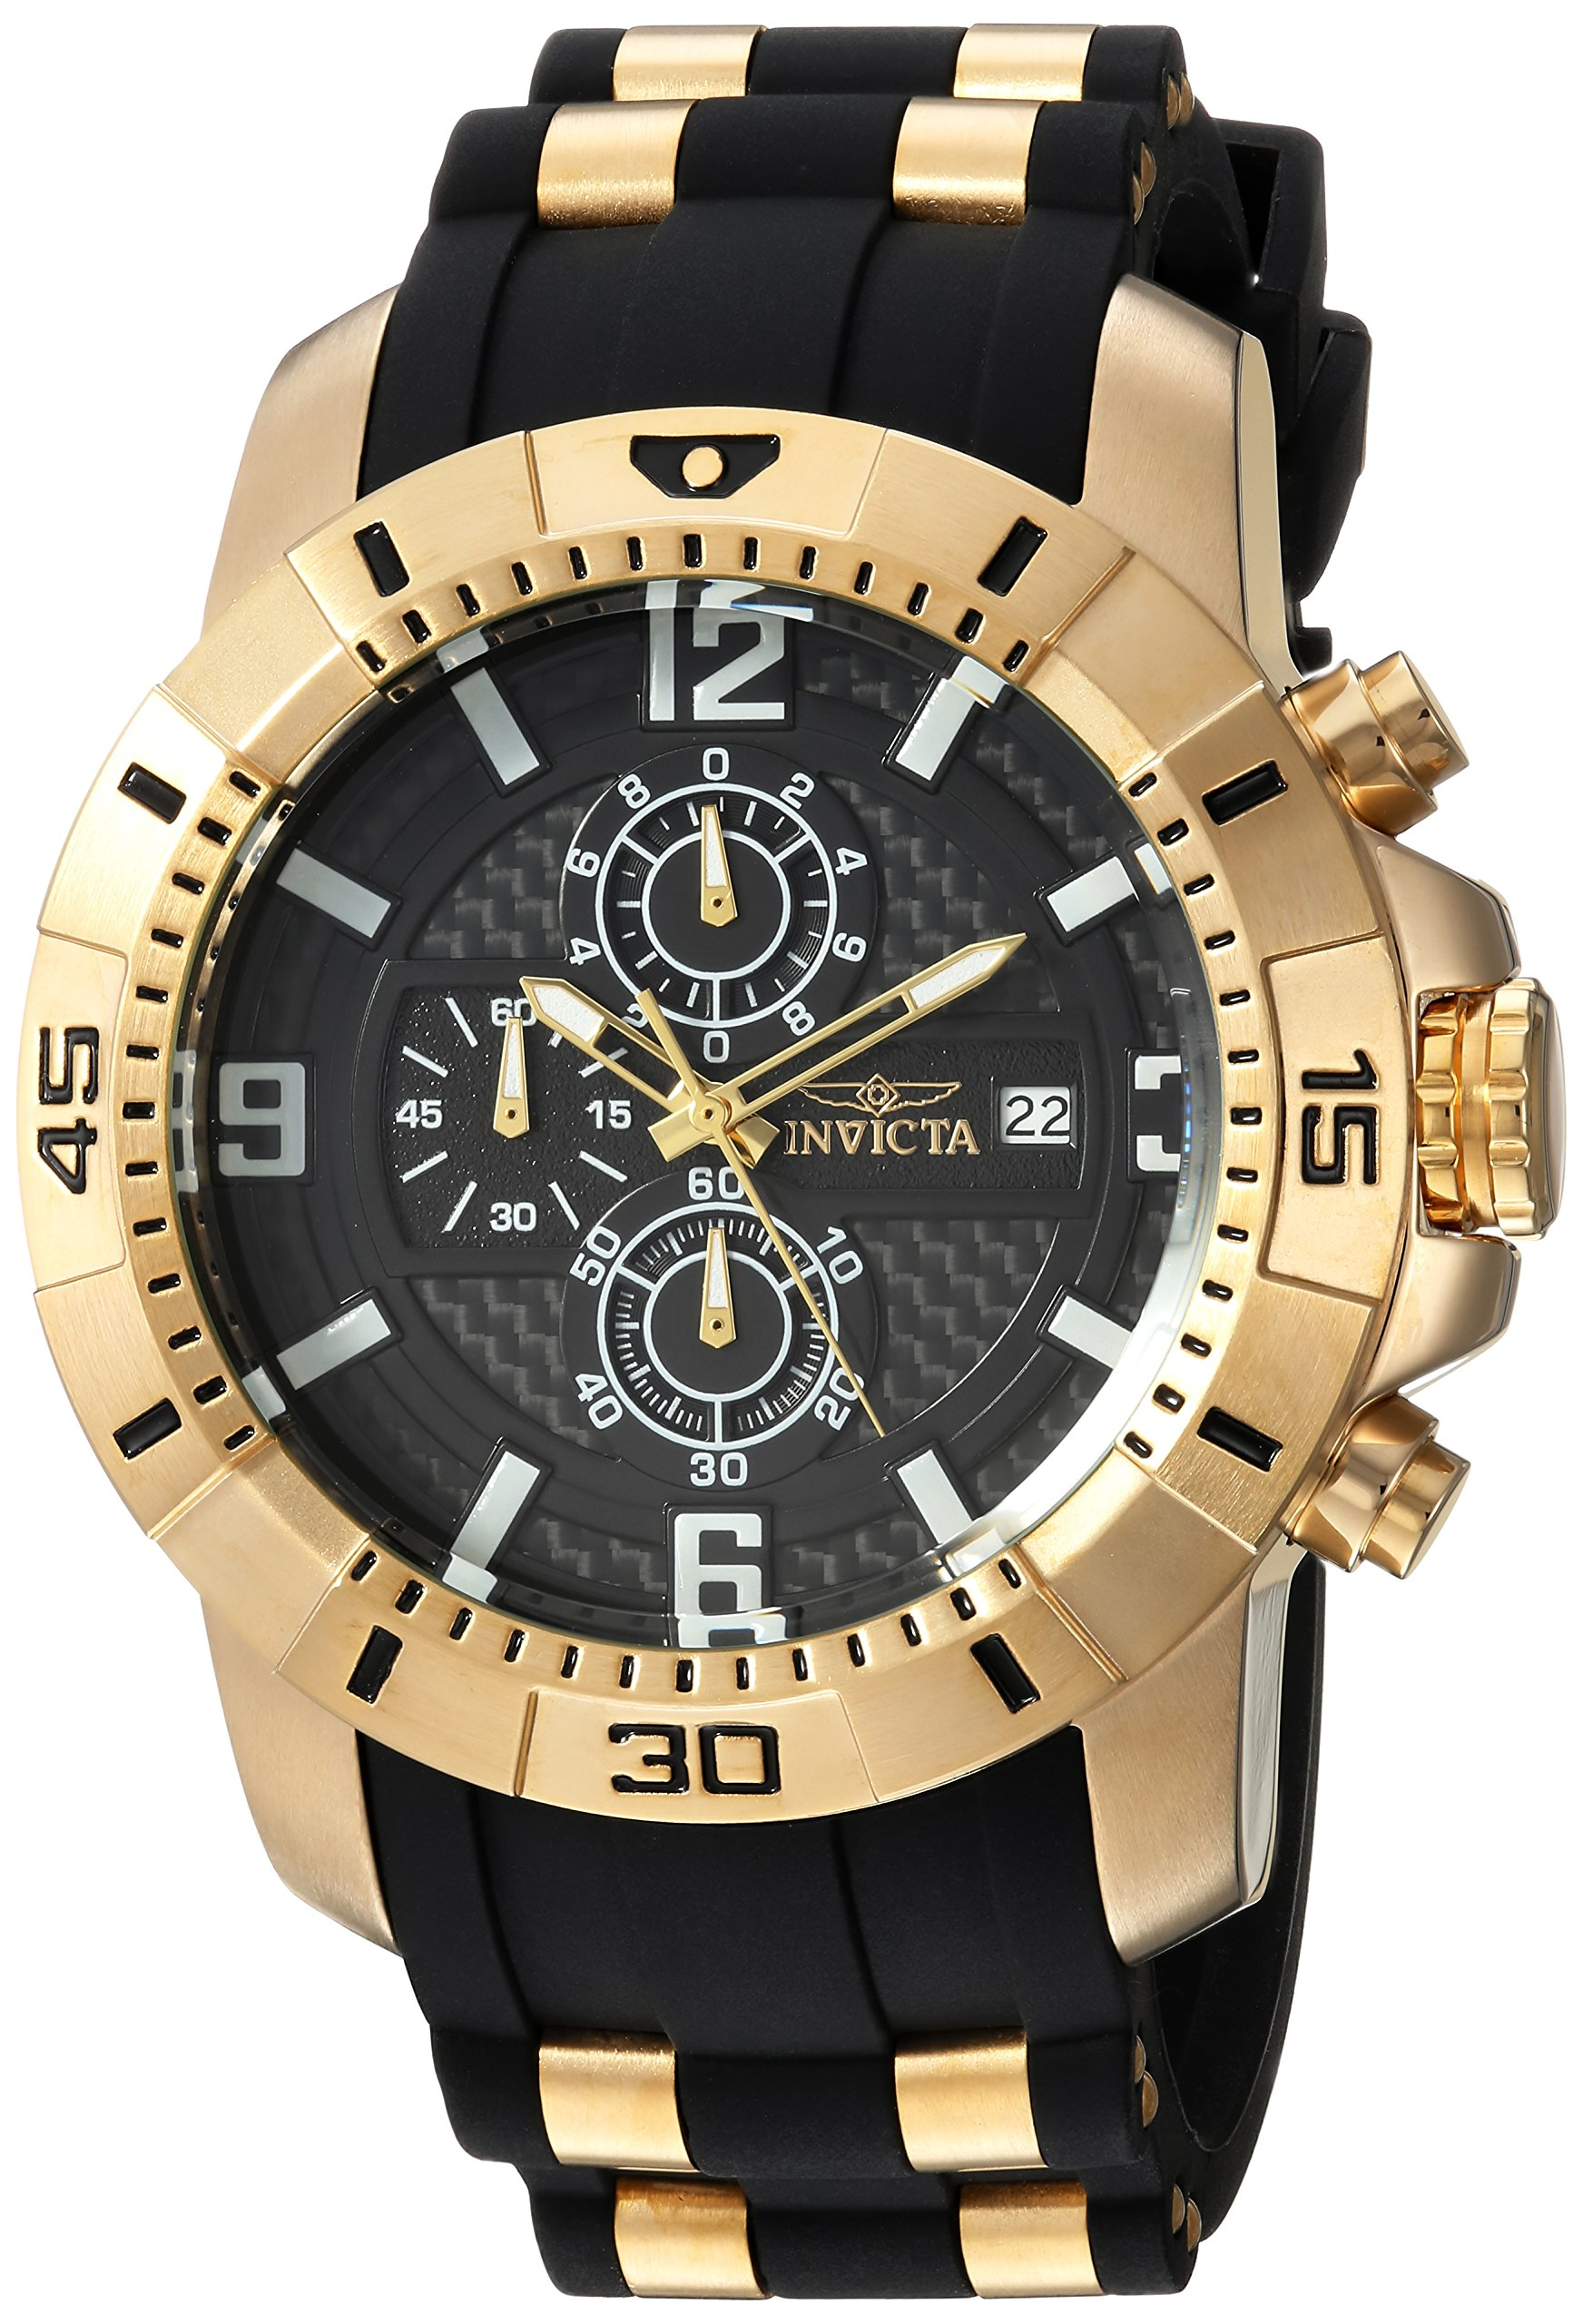 Invicta Men's Pro Diver Quartz Watch with Stainless-Steel Strap, Black, 26 (Model: 24965) by Invicta